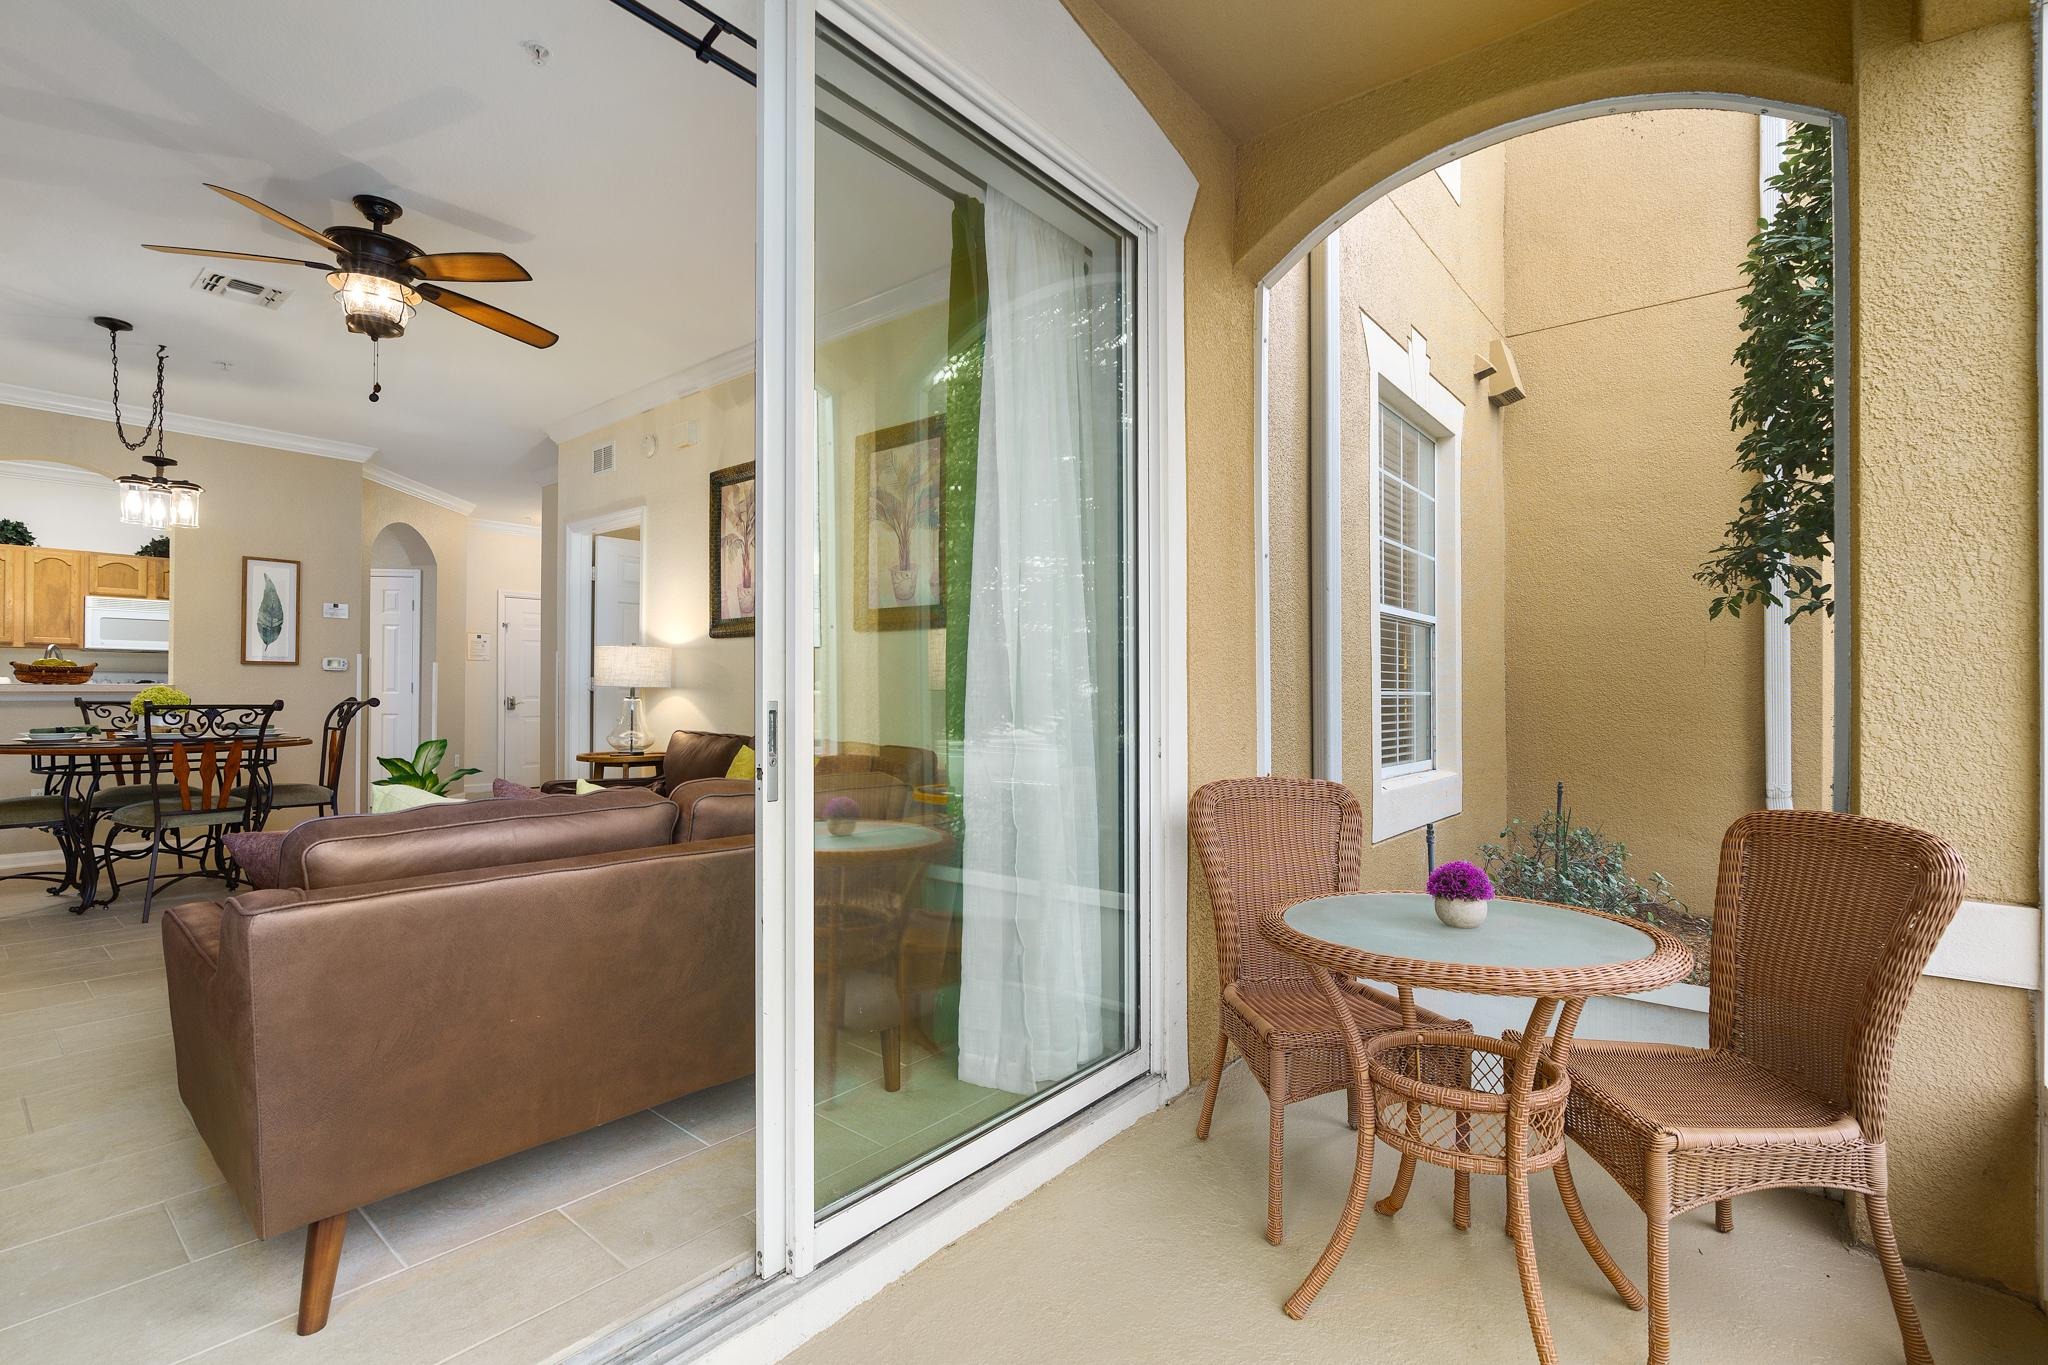 Private patio with ceiling fan